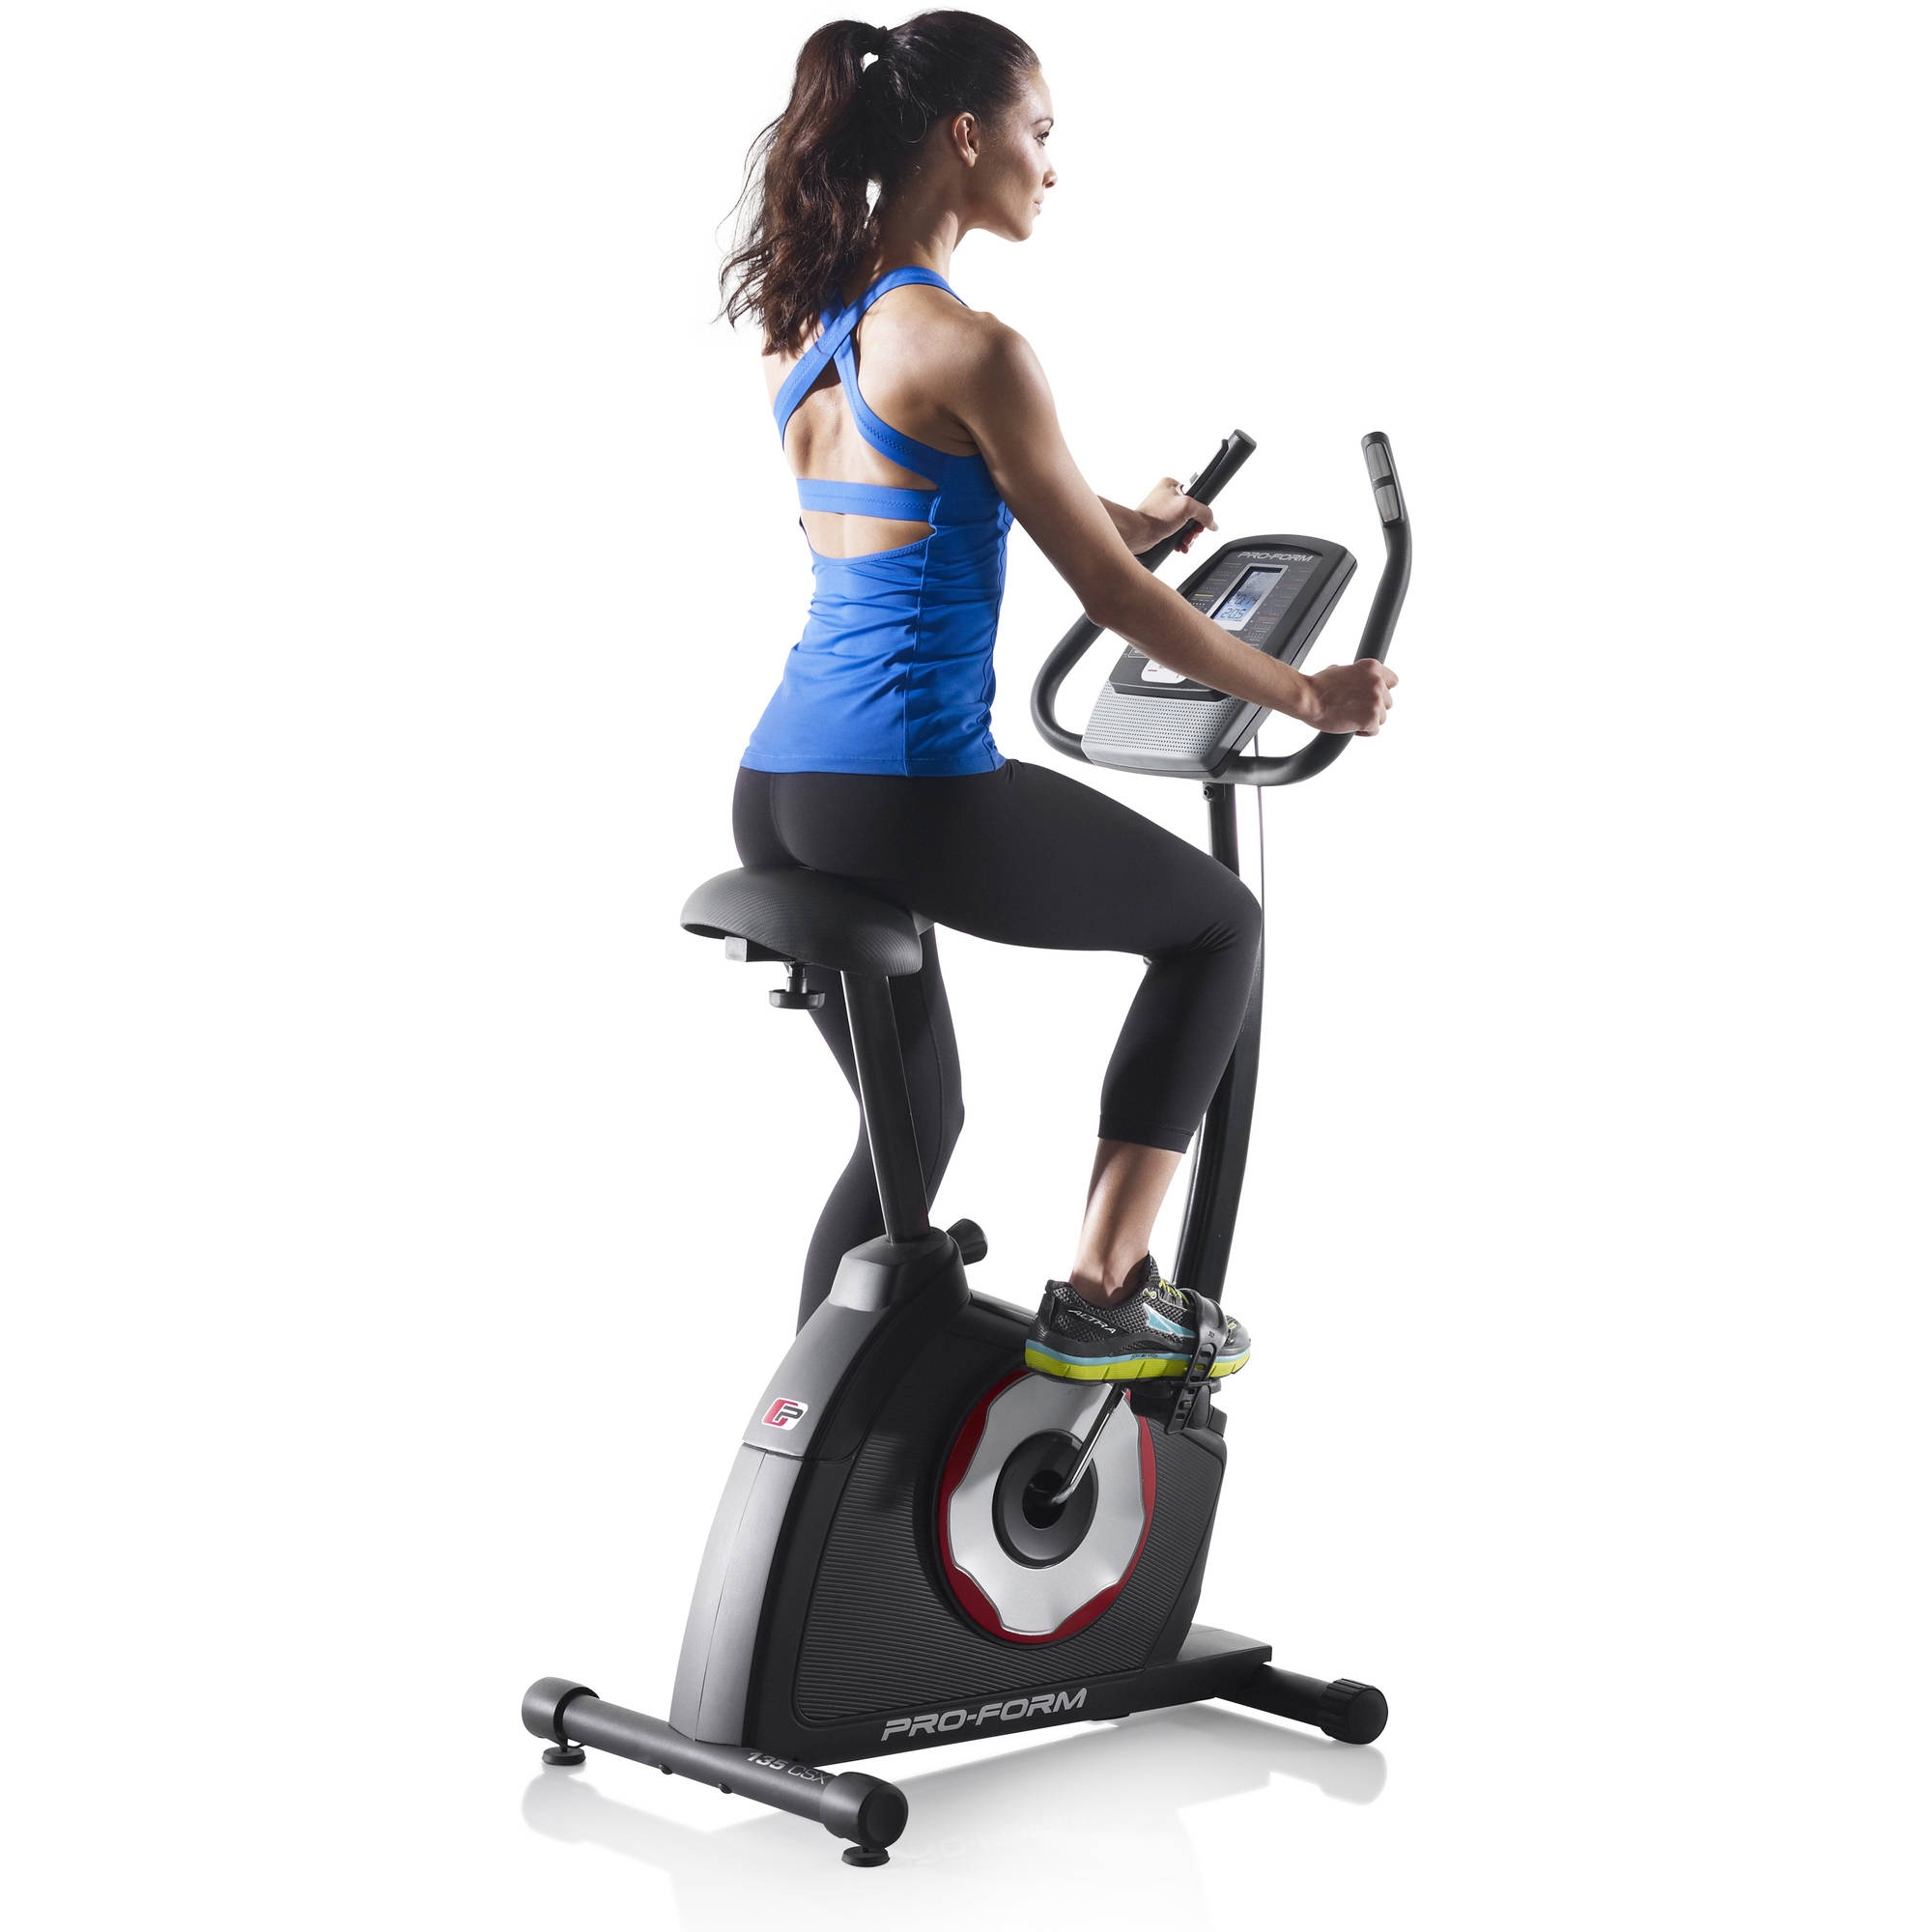 ProForm 135 CSX Upright Exercise Bike